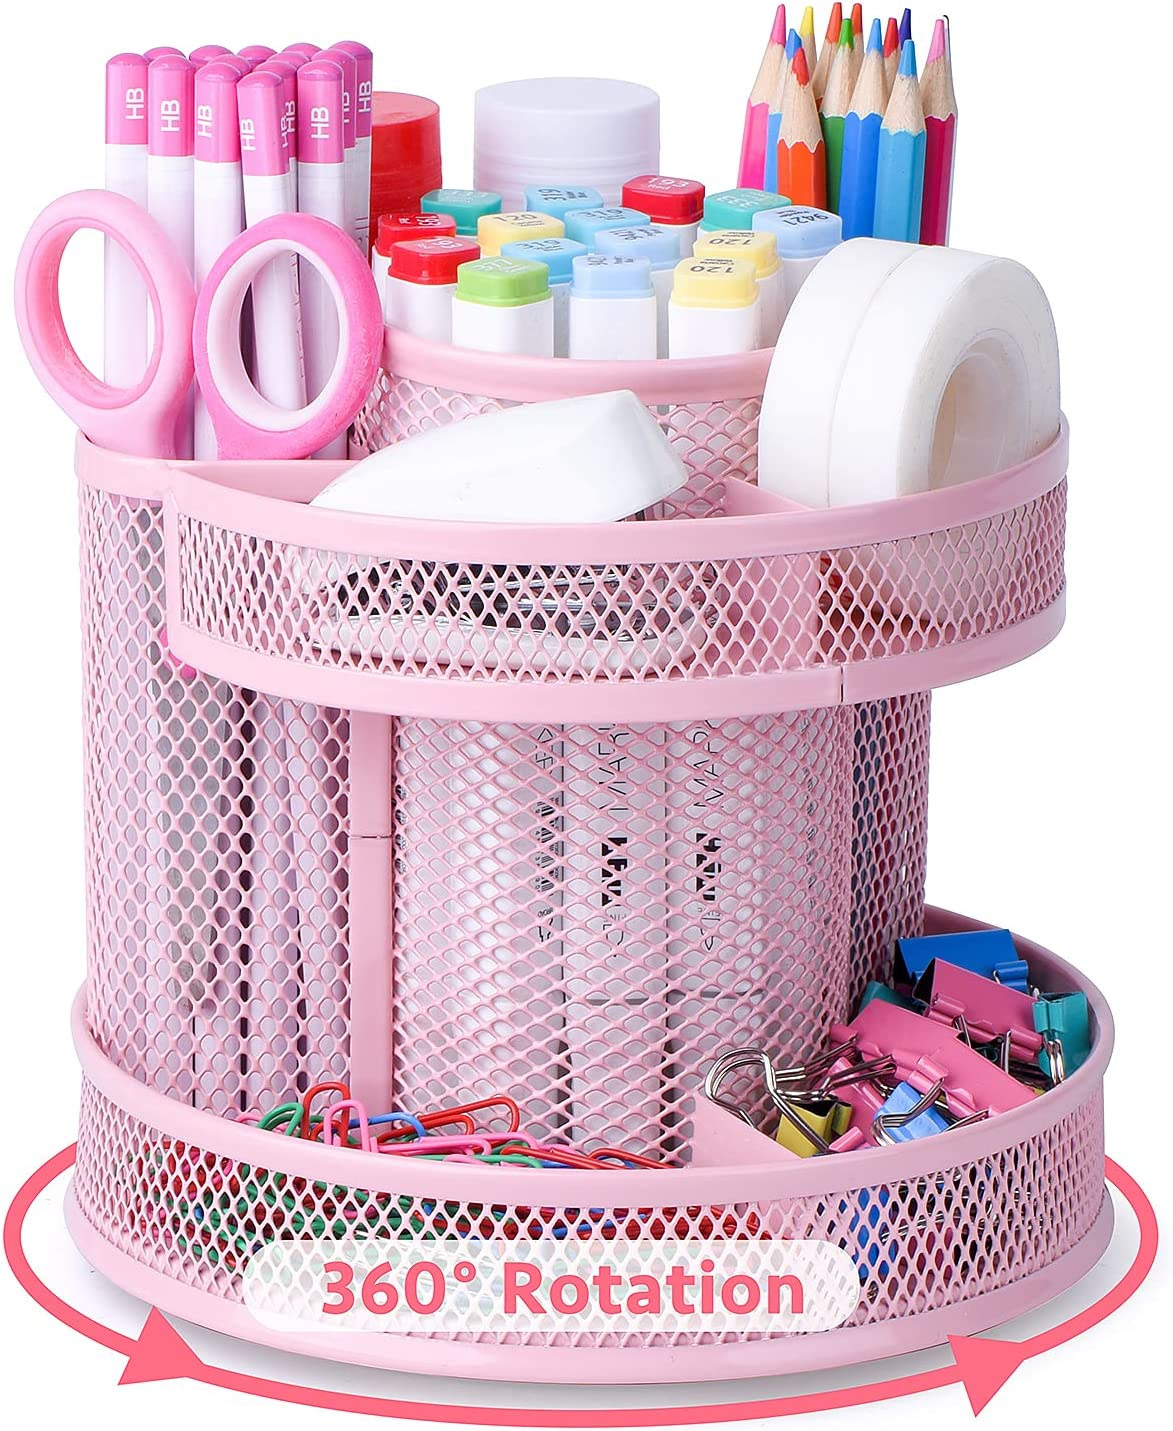 Cute Rotate Desk Organizer, Kawaii Mesh Desk Accessories Pen Holder Stationery Carousel, Spinning Pencil Storage Caddy Tray for School, Home, Office Supplies - Pink